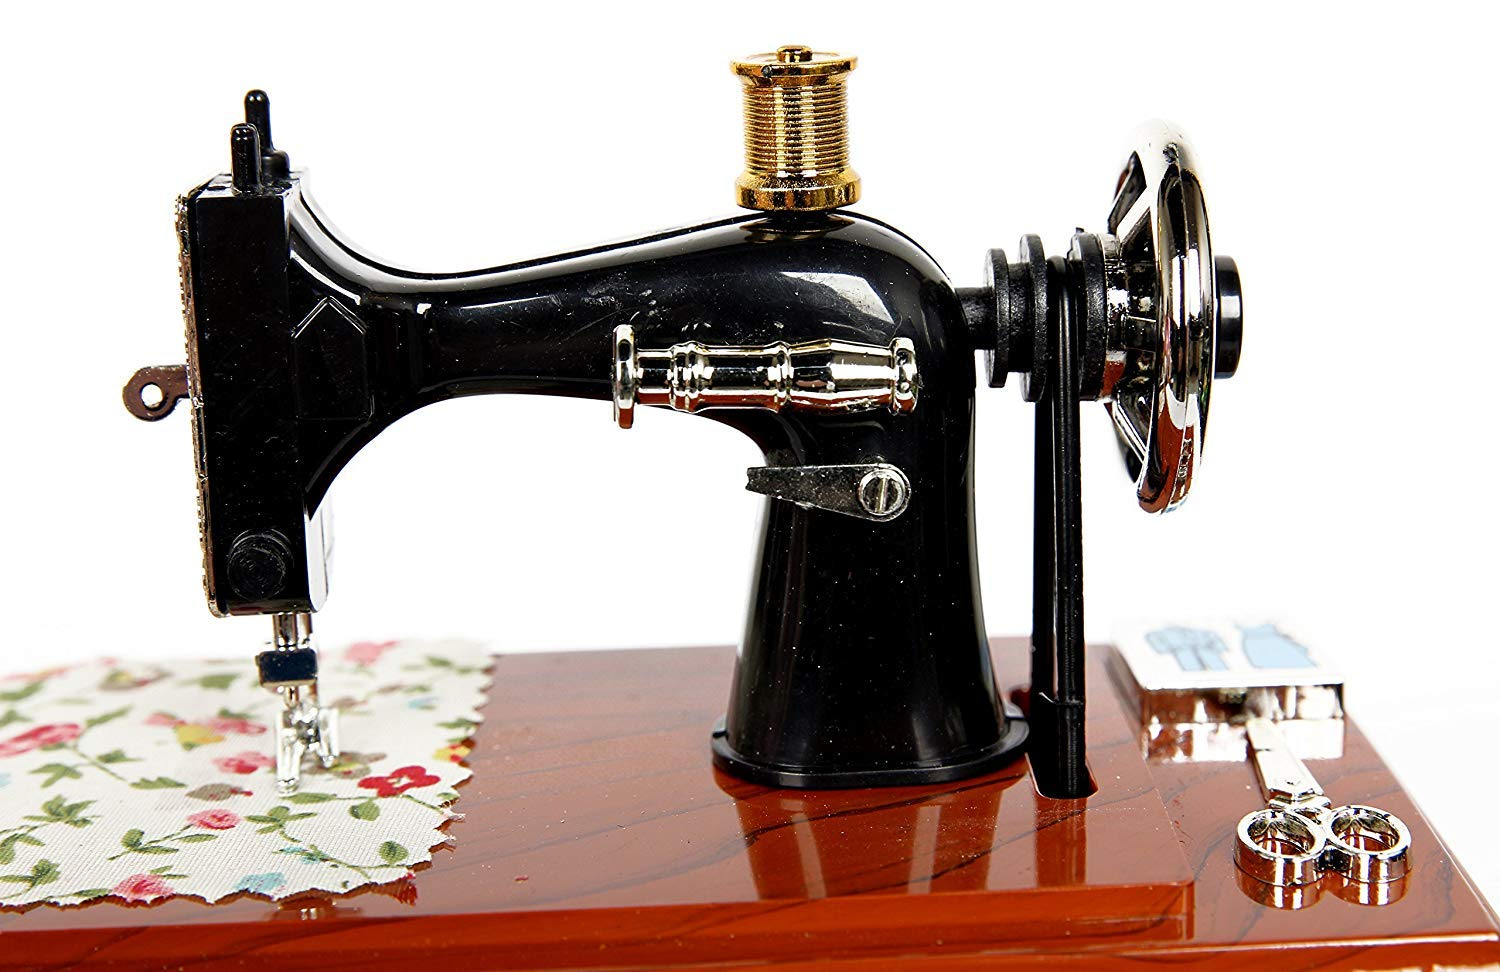 Vintage Mini Sewing Machine Style Plastic Music Box Table Desk Decoration Toy Gift for Kid Children